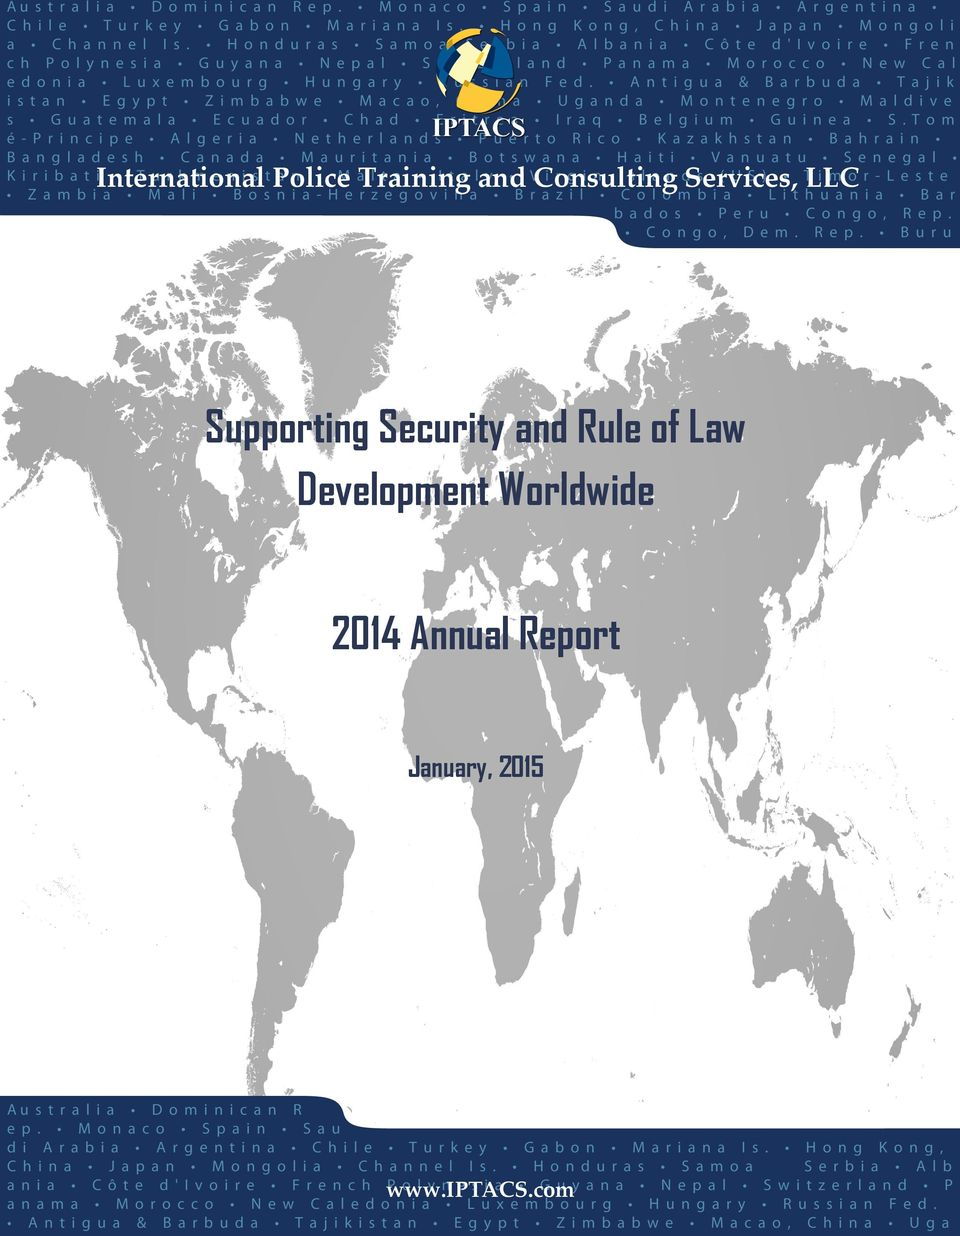 Security and Rule of Law Development